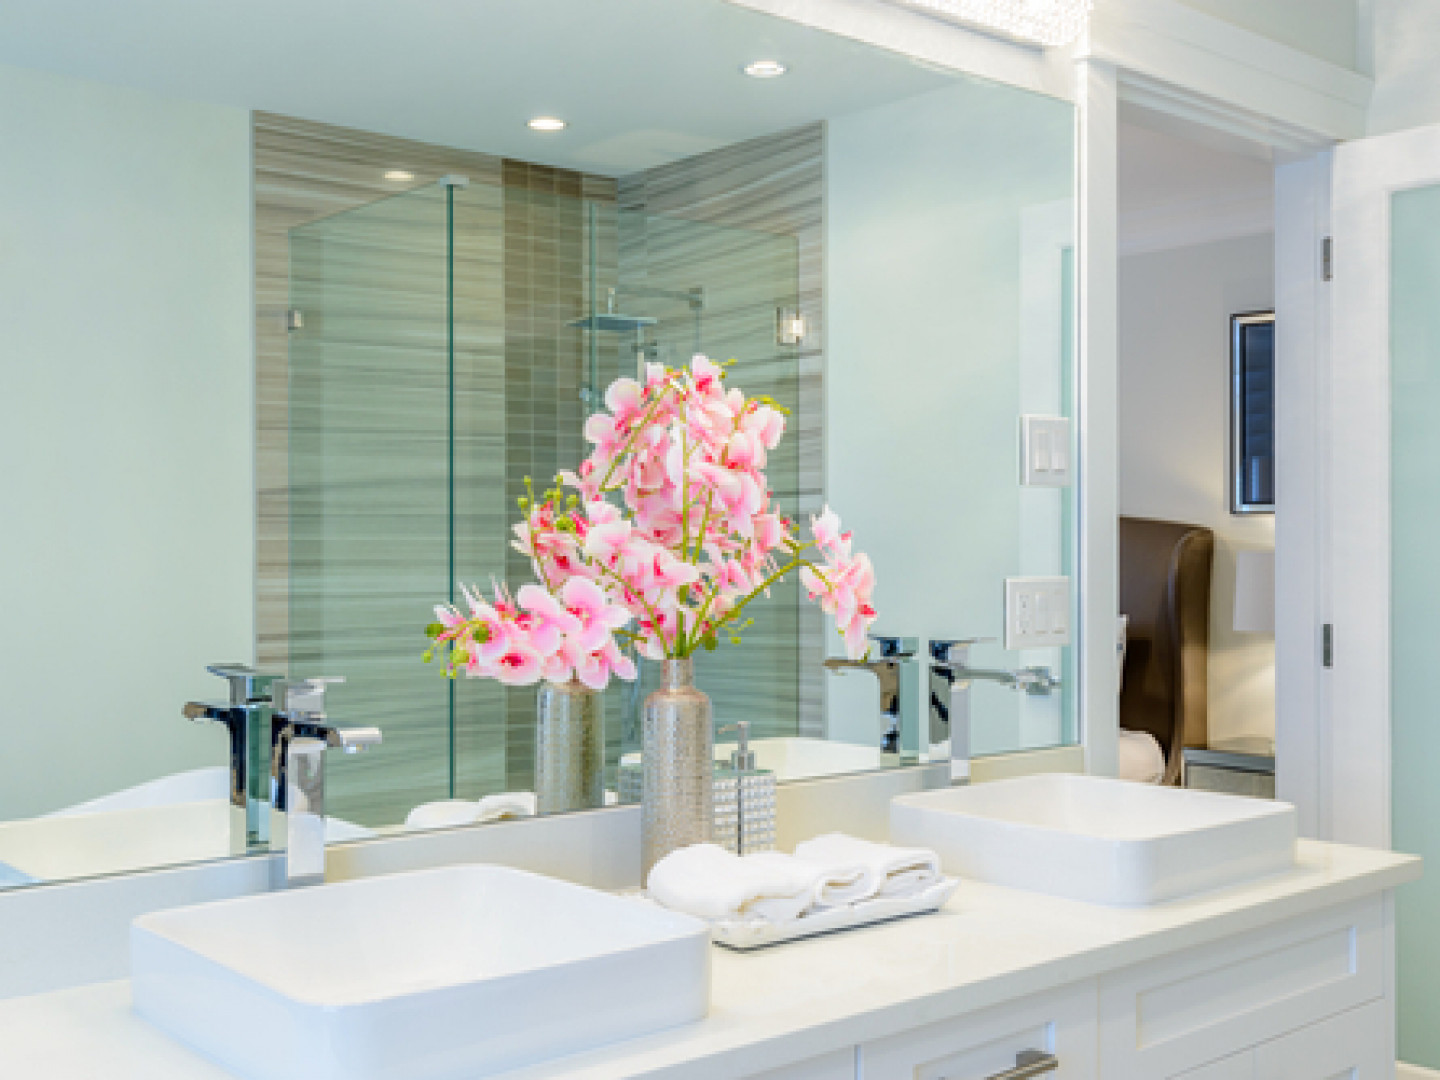 Transform your outdated bathroom